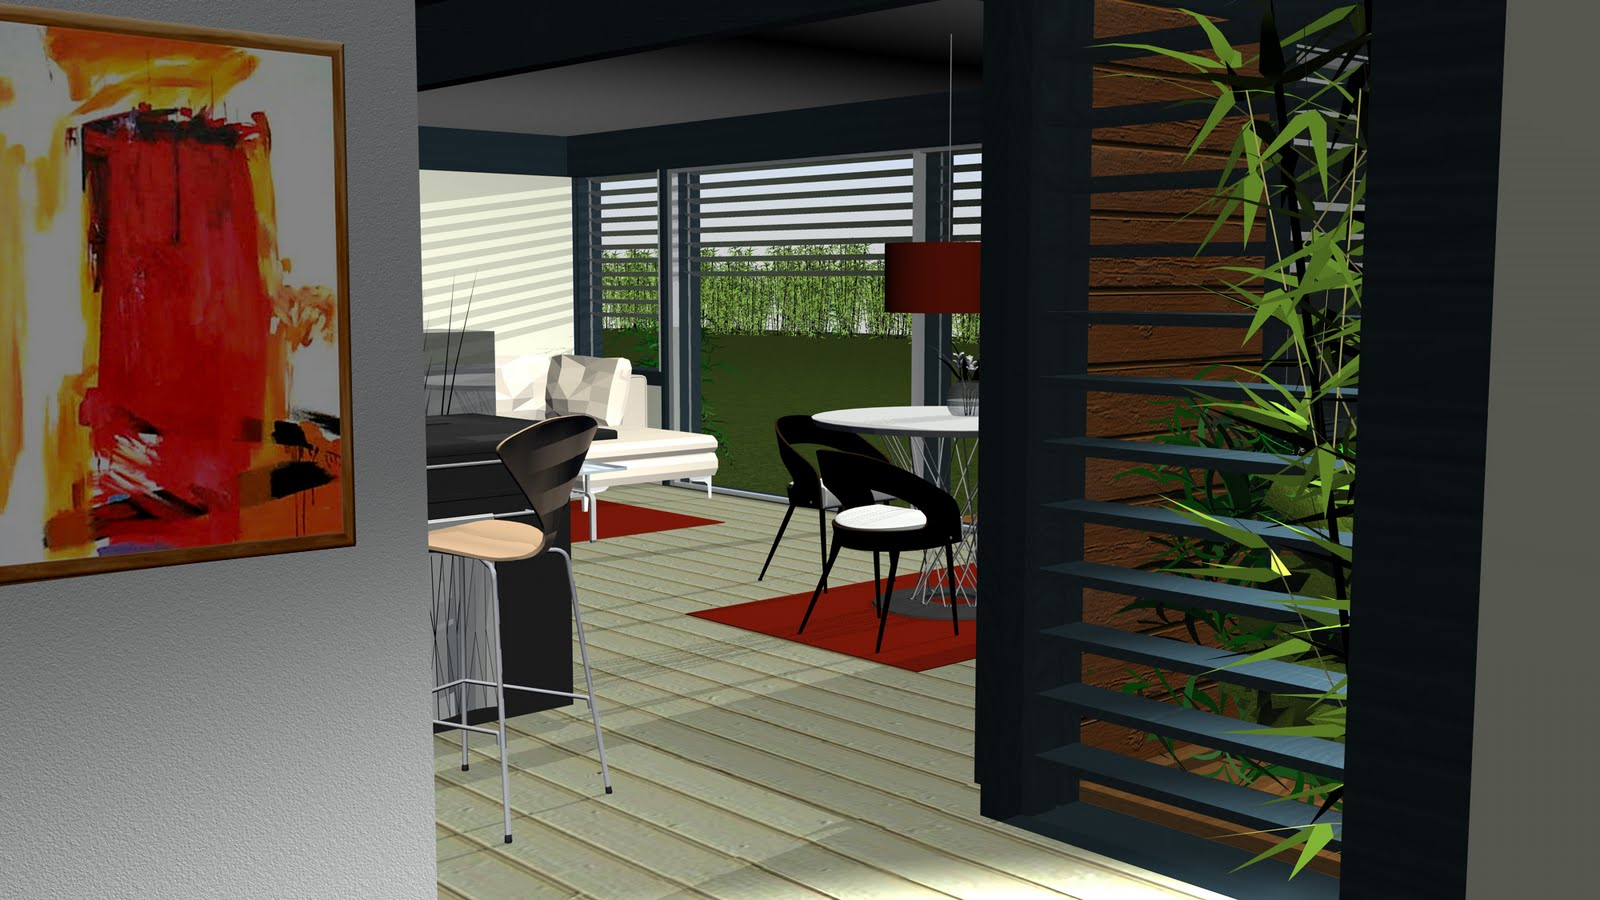 Cl mence peign architecte d 39 int rieur cp ai visuels 3d for Architecte d interieur prix